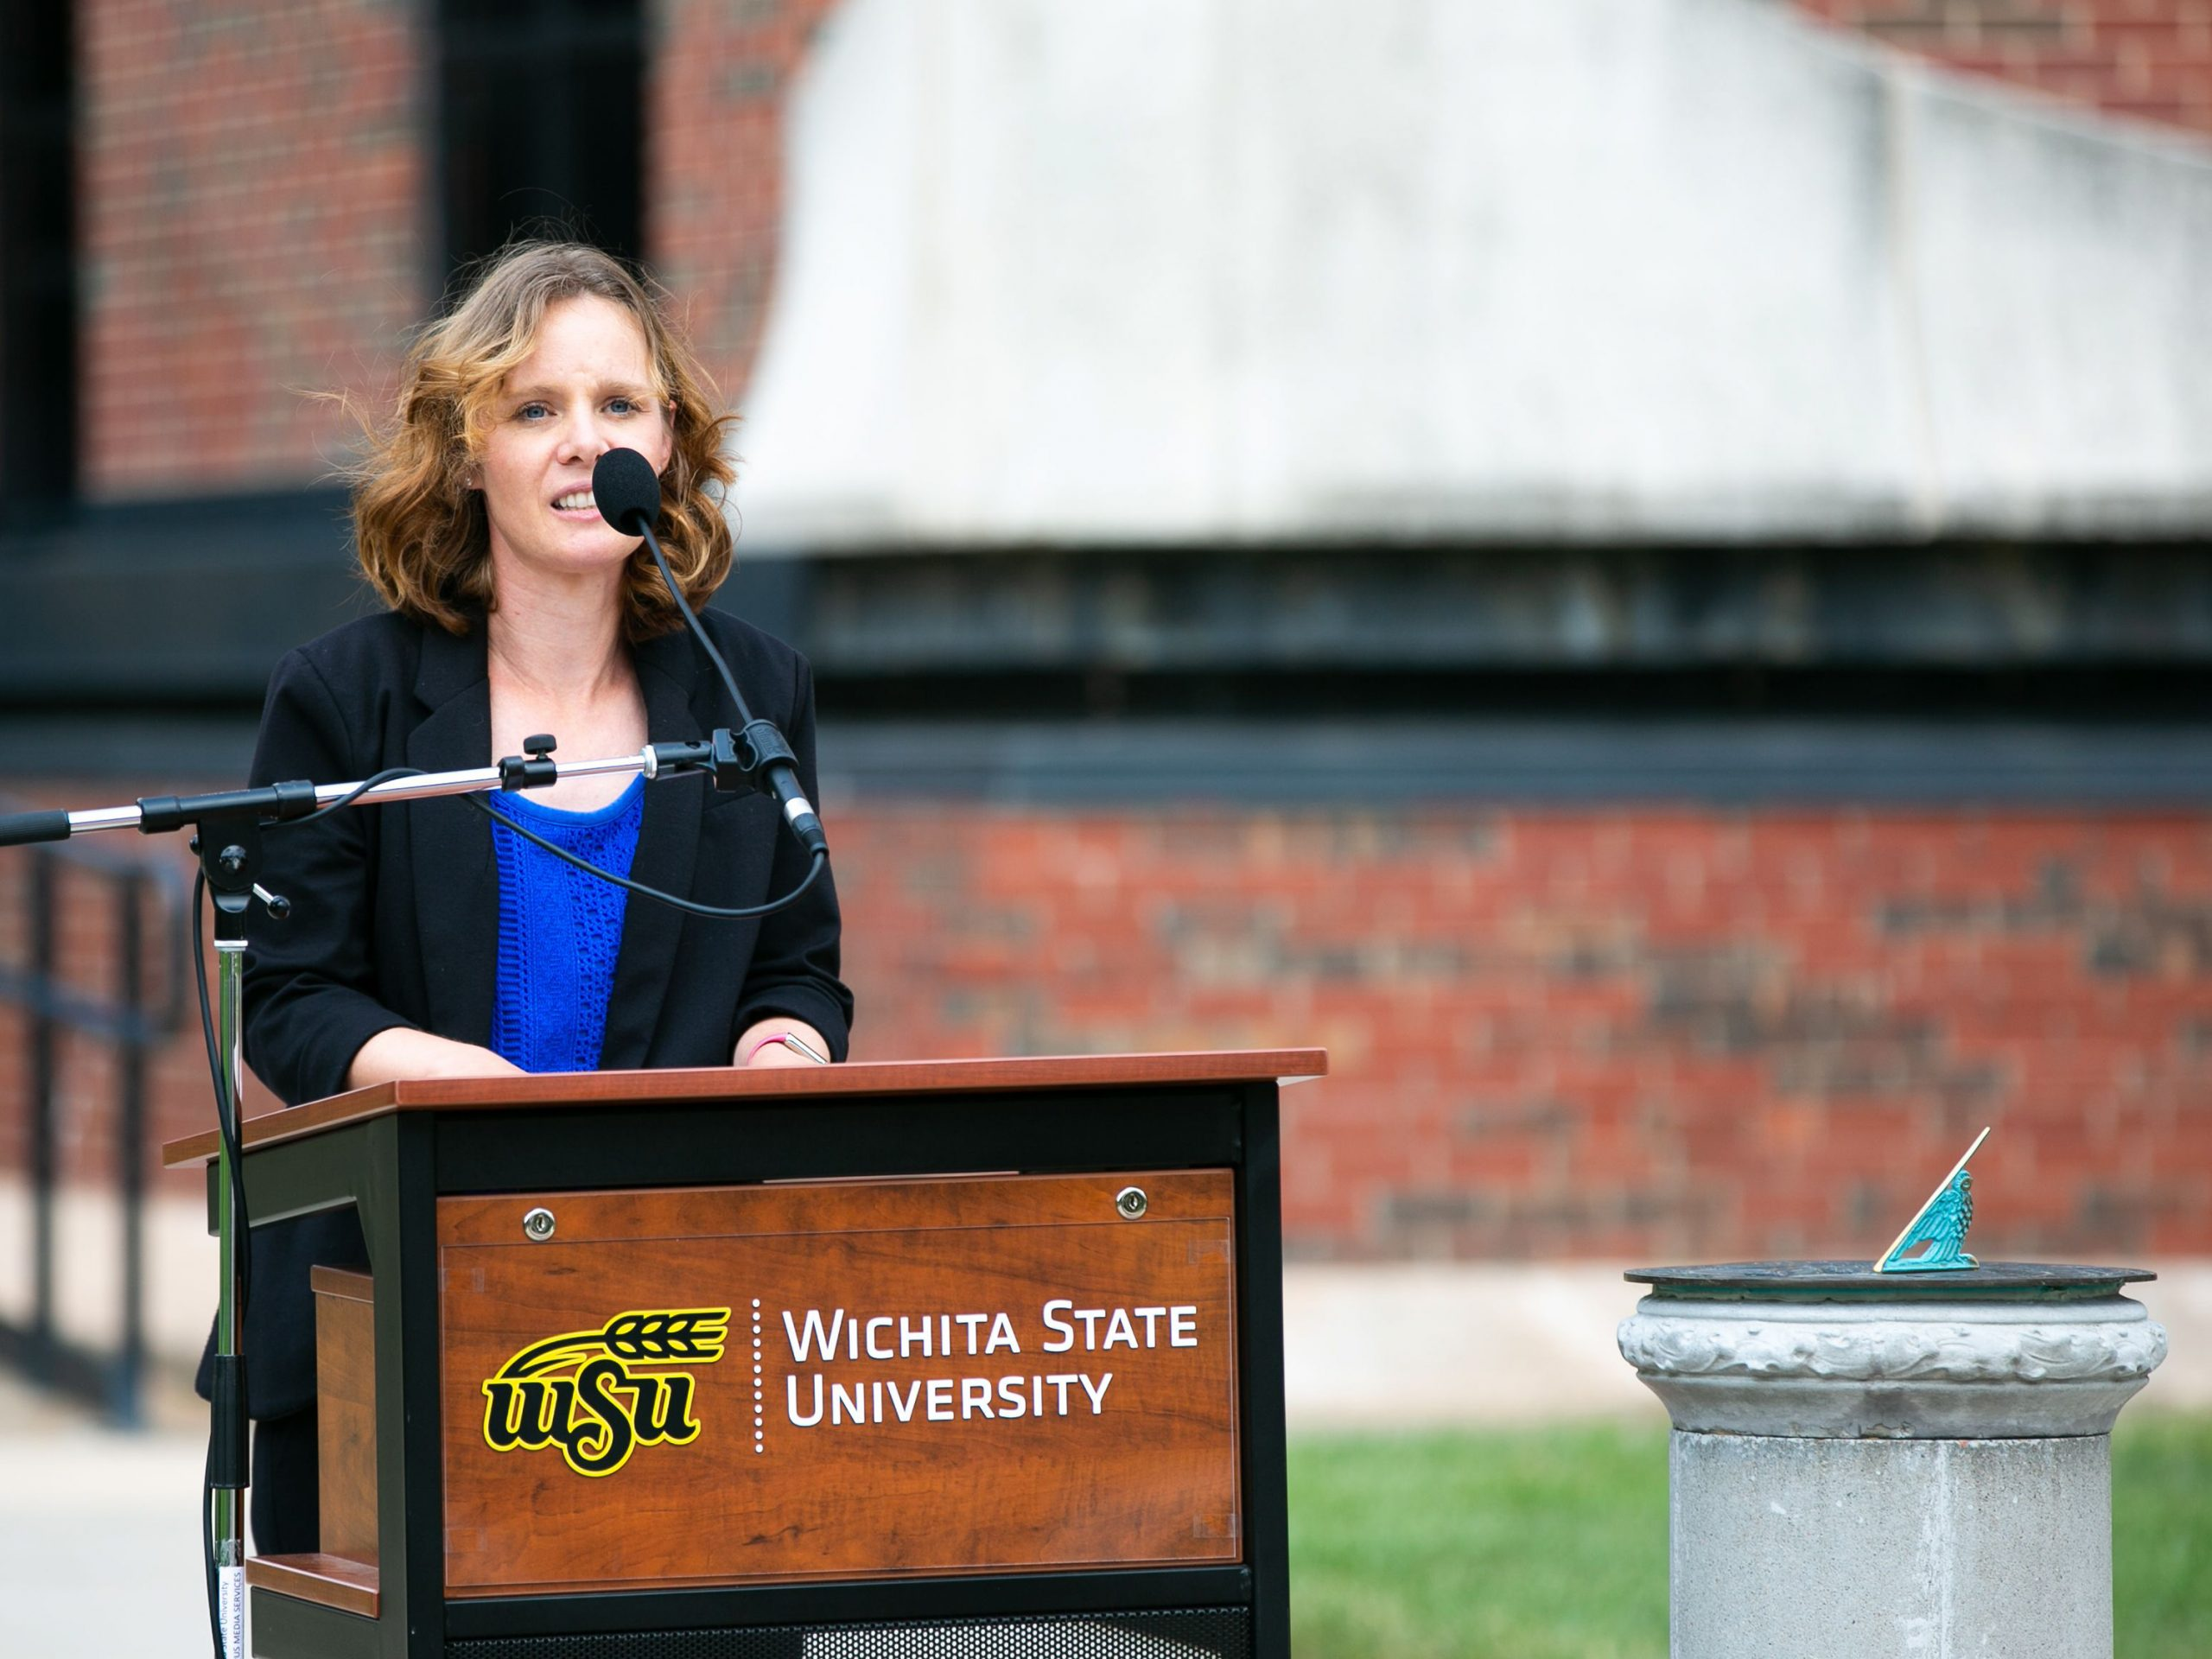 Morgan Barnes, professional services manager for the Public Policy and Management Center, speaks at the rededication ceremony for a sundial that was donated to Wichita State in 1934. The sundial was dedicated to the late Dr. George Platt, professor emeritus at the Hugo Wall School of Public Affairs, and is located on the east side of Hubbard Hall.